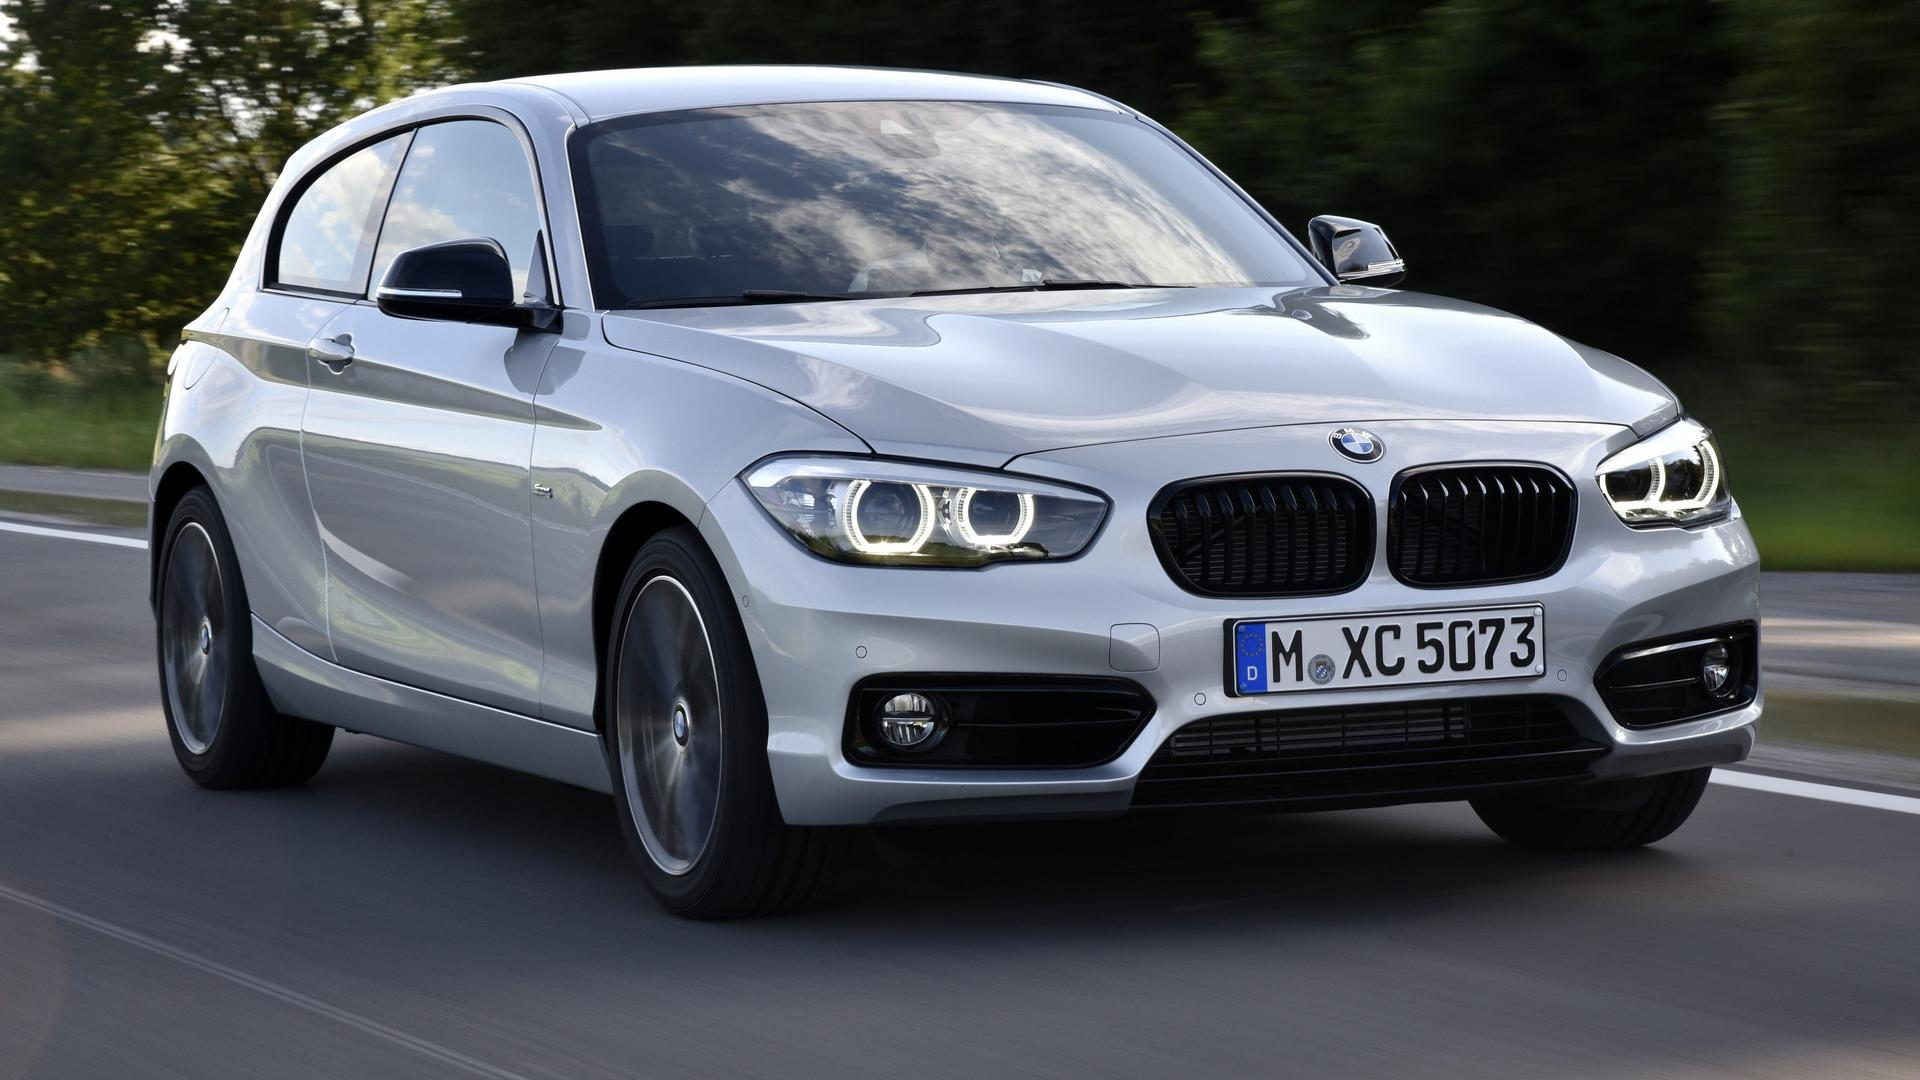 2018 Bmw 1 Series Facelift Detailed In 100 New Images 3 Videos